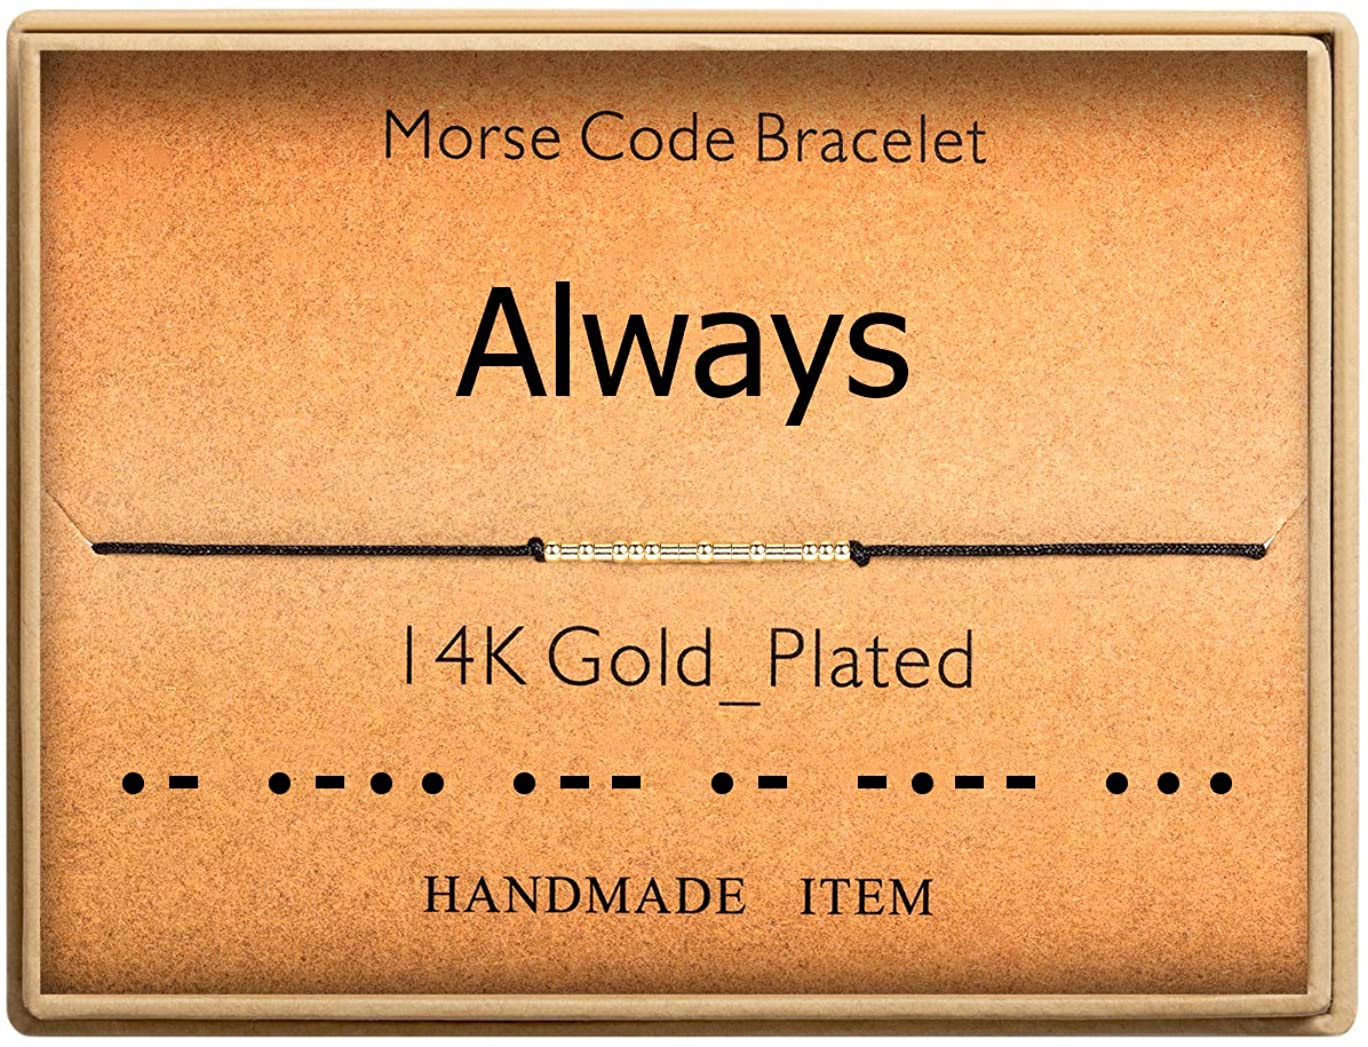 Morse Code Bracelet 14k Gold Plated Beads on Silk Cord Secret Message Always Bracelet Gift Jewelry for Her